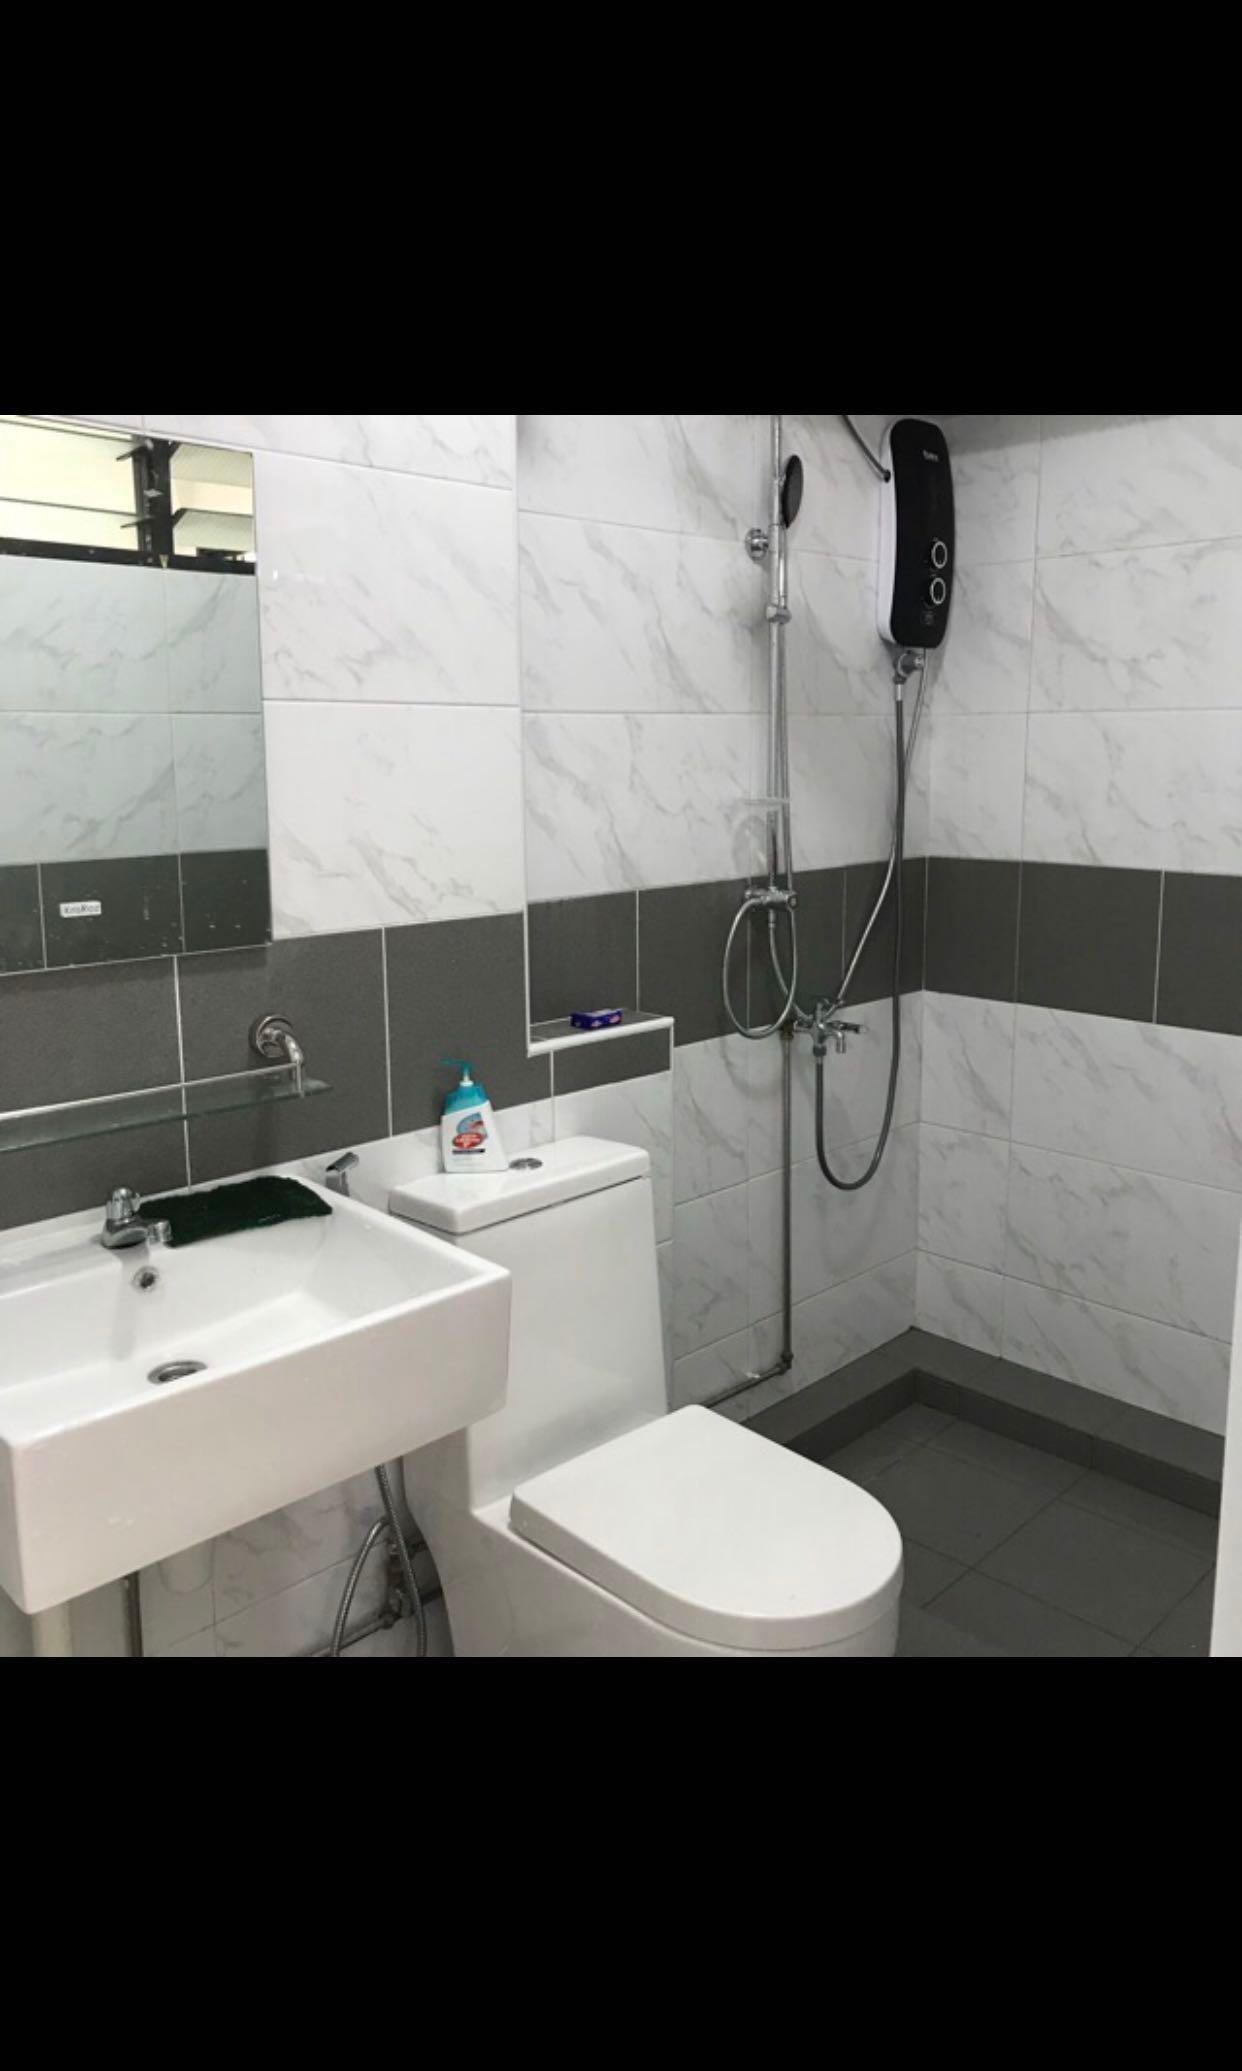 Full toilet package promotion